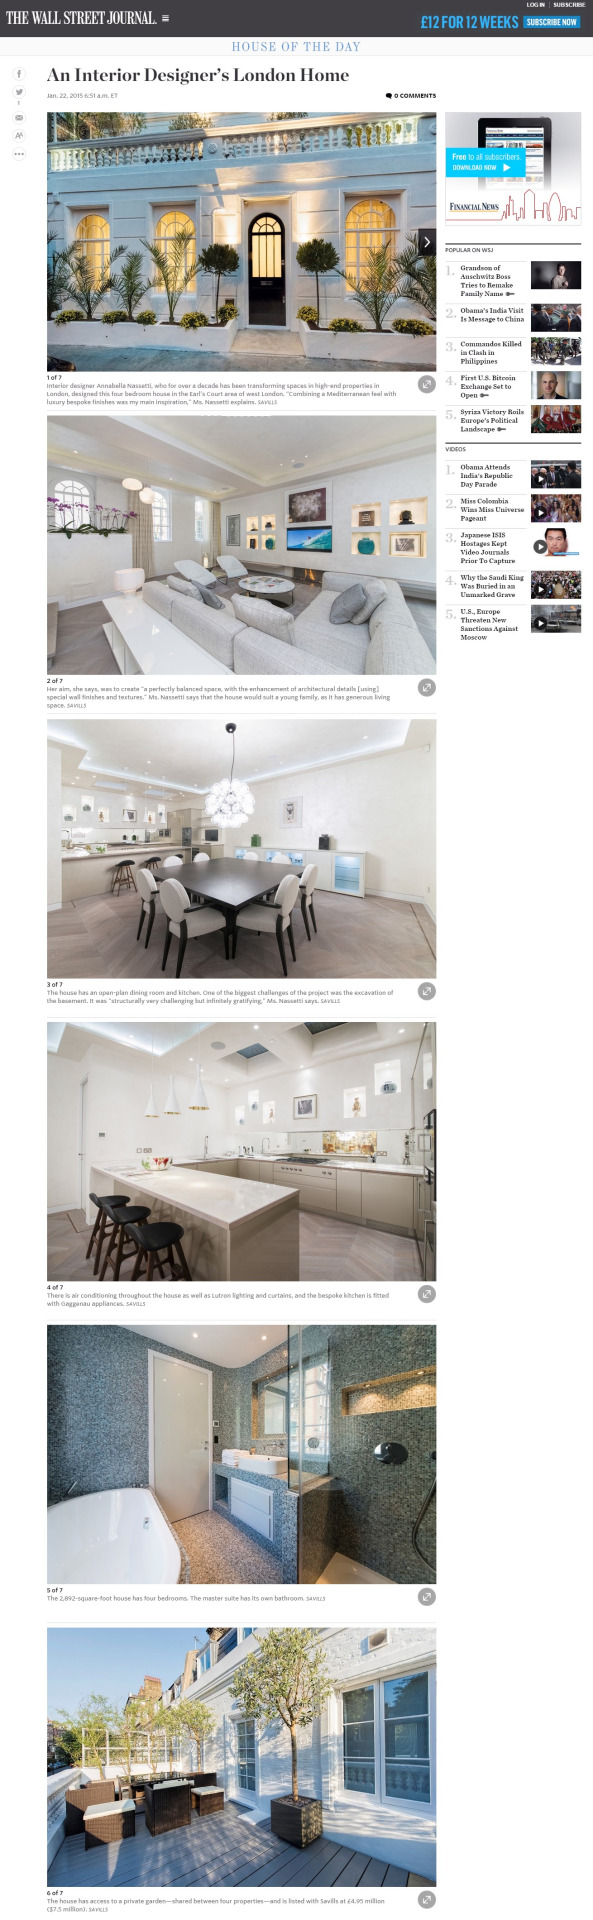 High end interior designer annabella nassetti in wall for Interior designers based in london